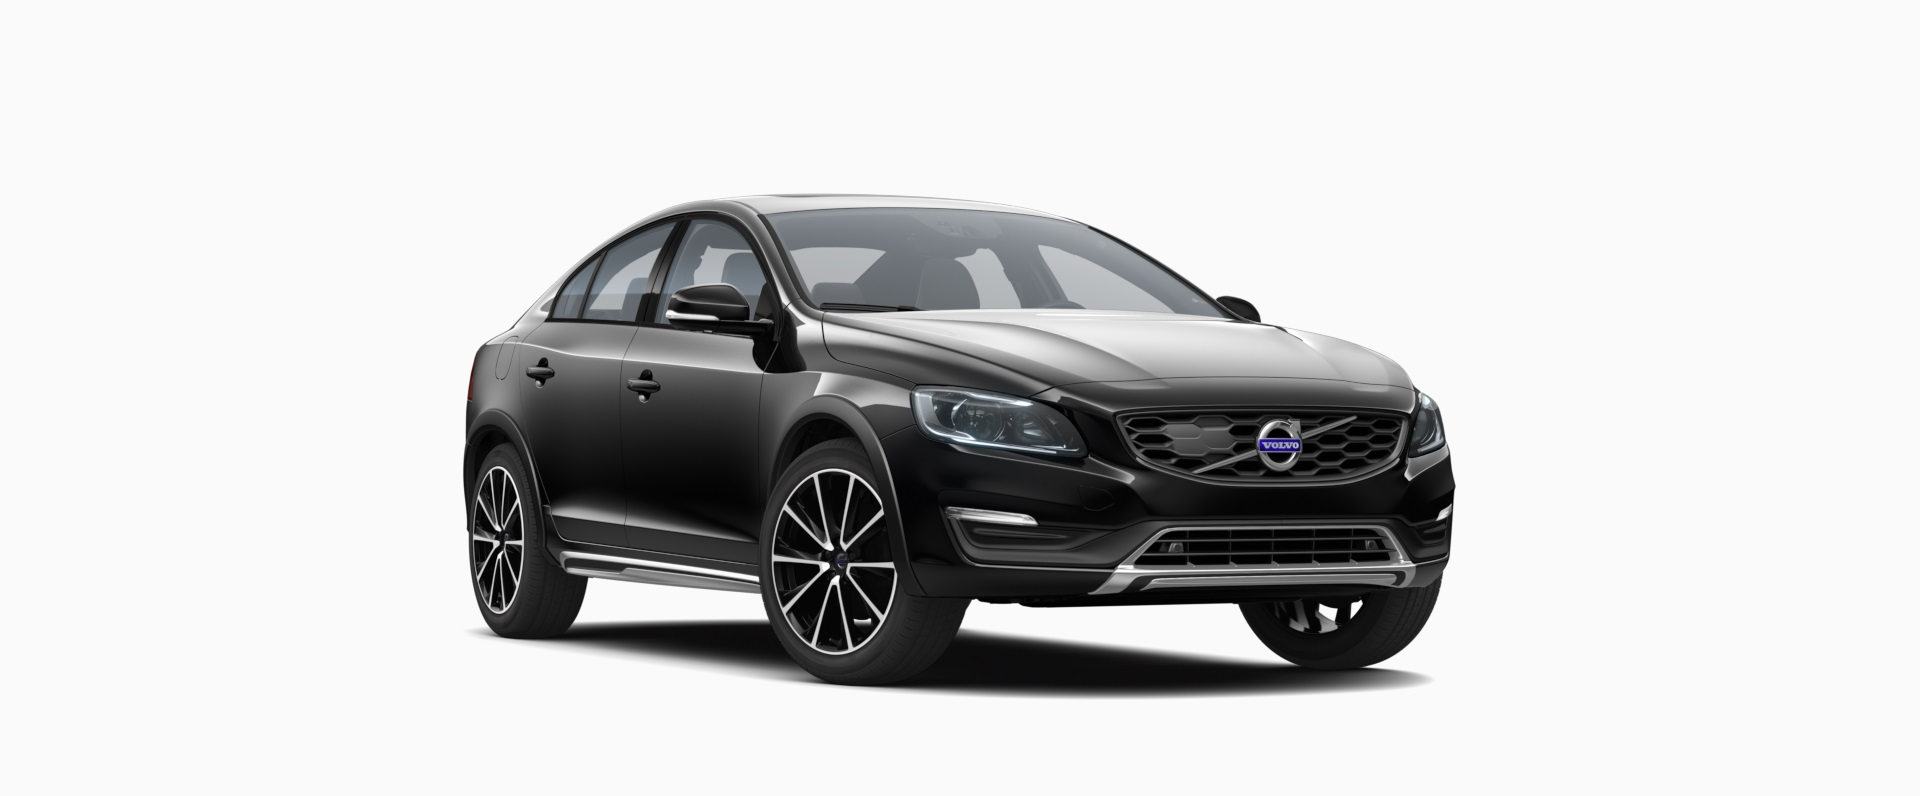 S60 Cross Country